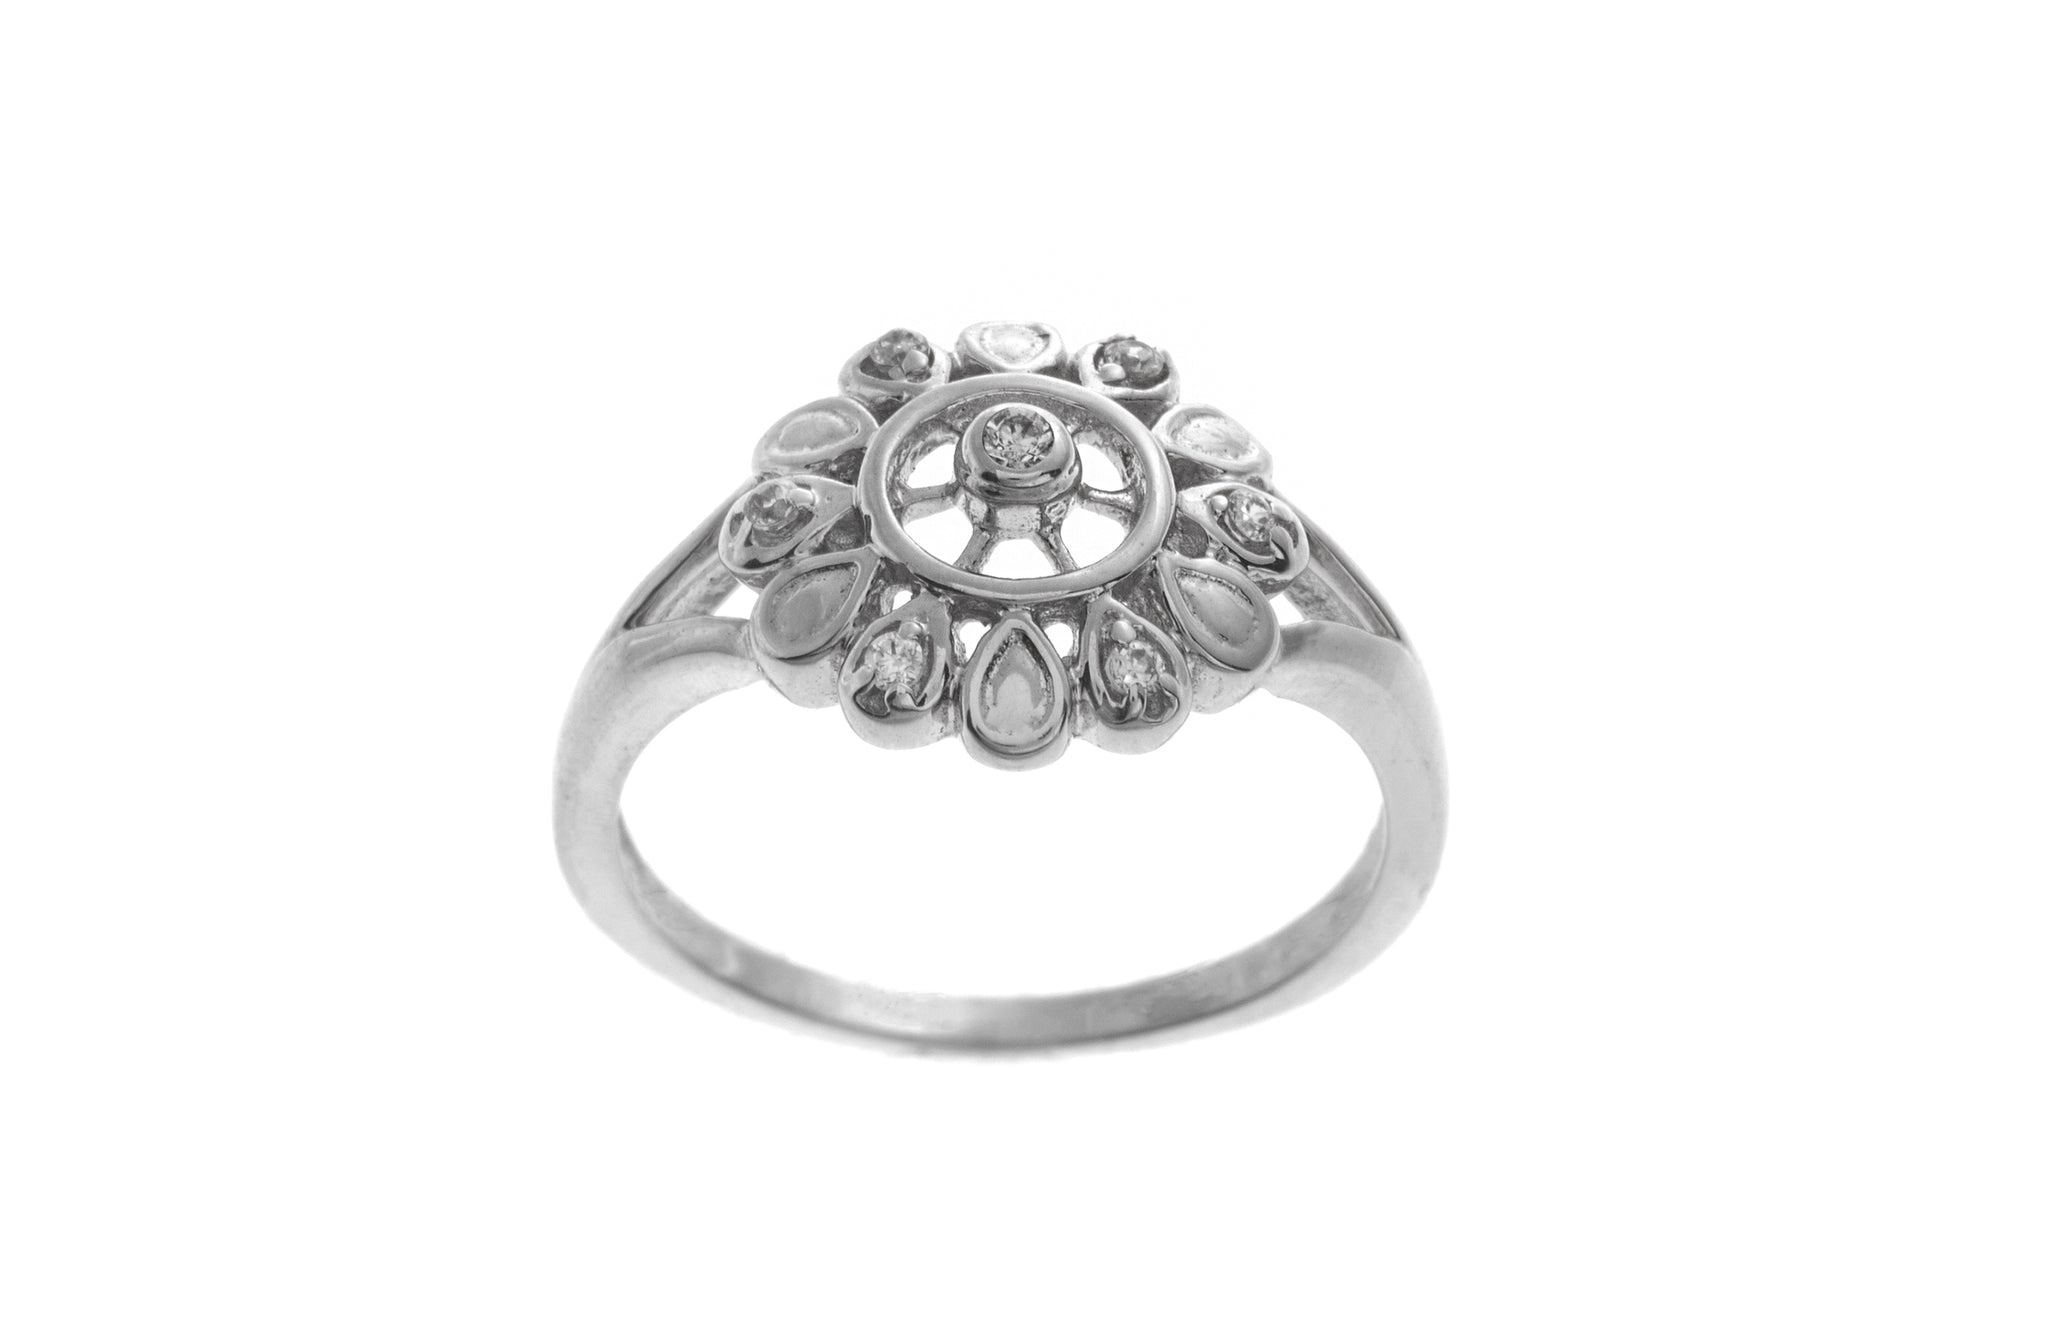 18ct White Gold Dress Ring set with Cubic Zirconias (LR-2503)